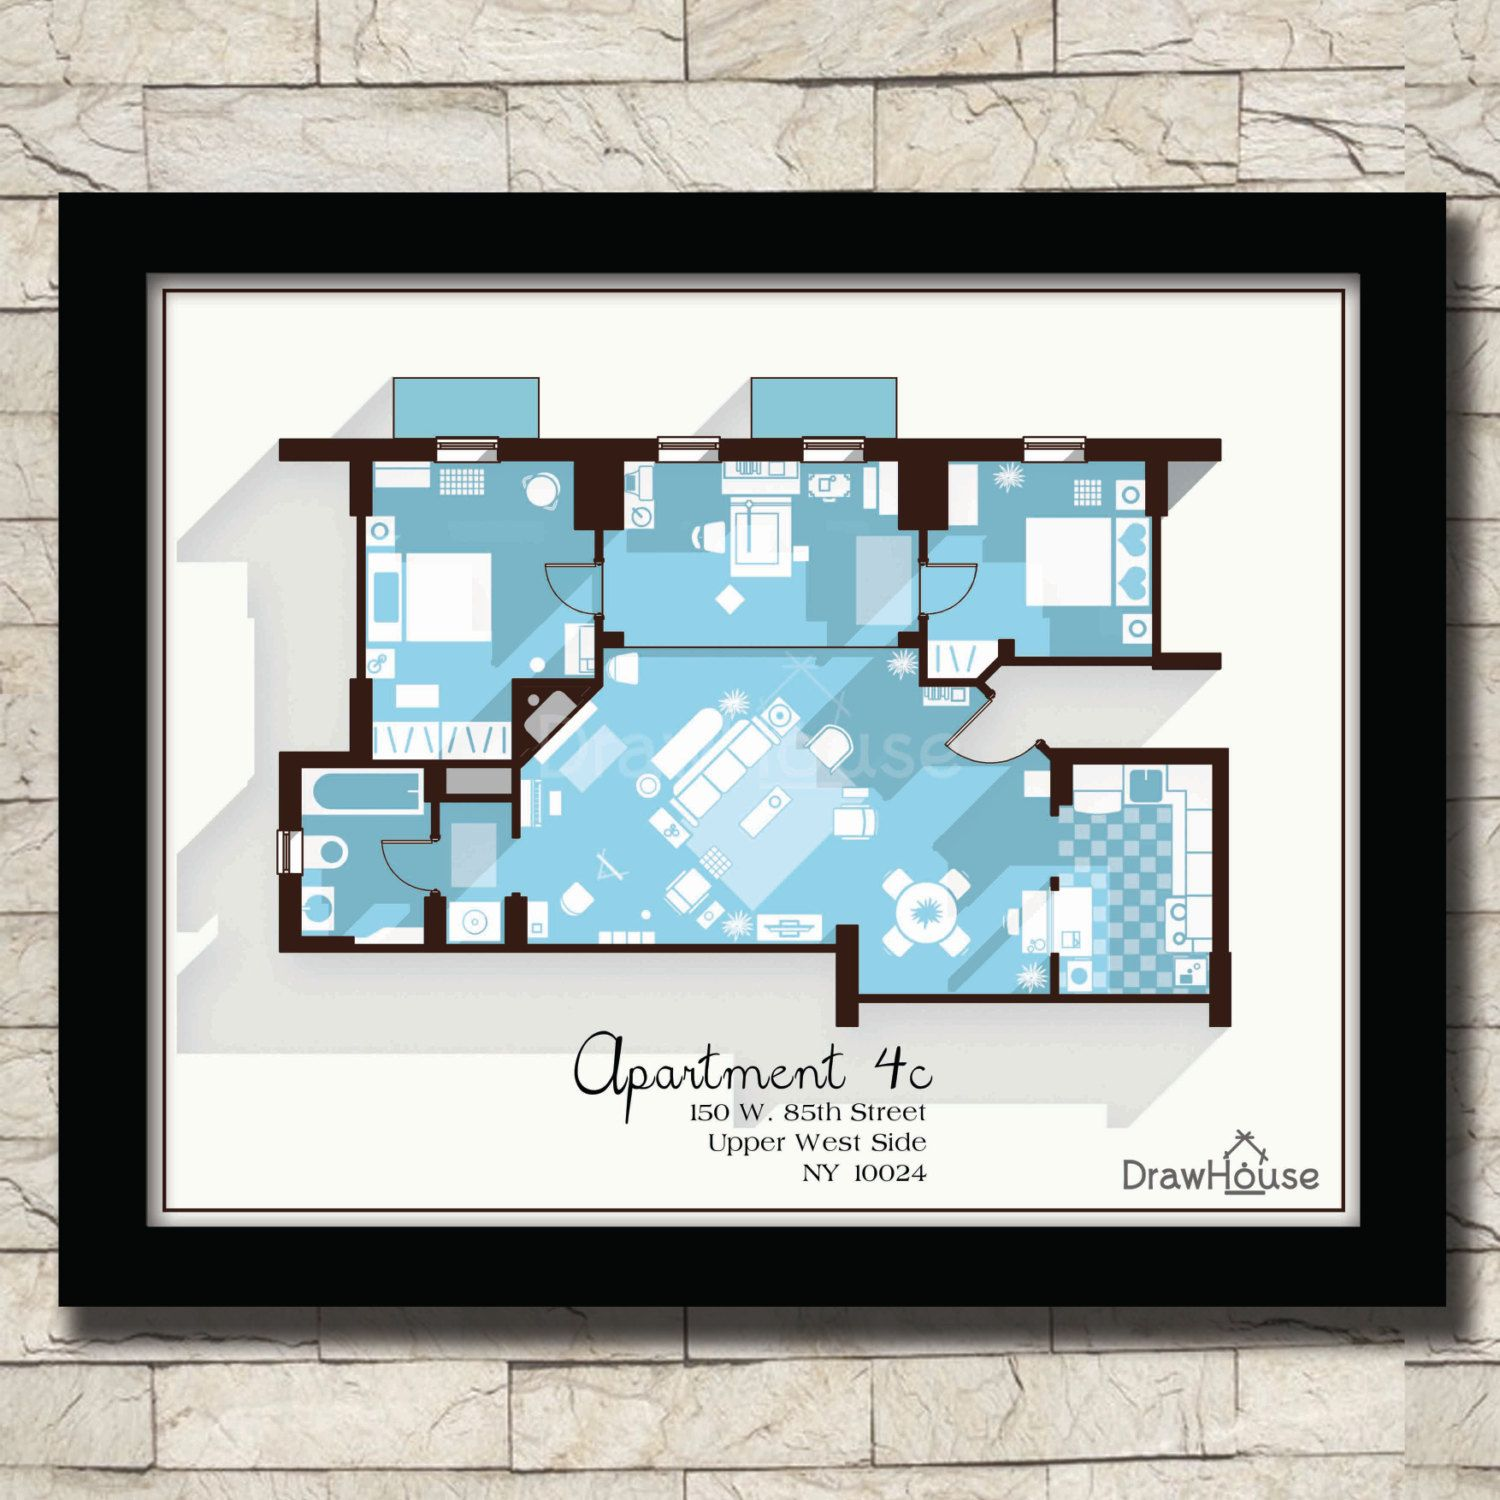 How i met your mother apartment famous tv show floor plan how i met your mother apartment famous tv show floor plan blueprint poster art malvernweather Gallery